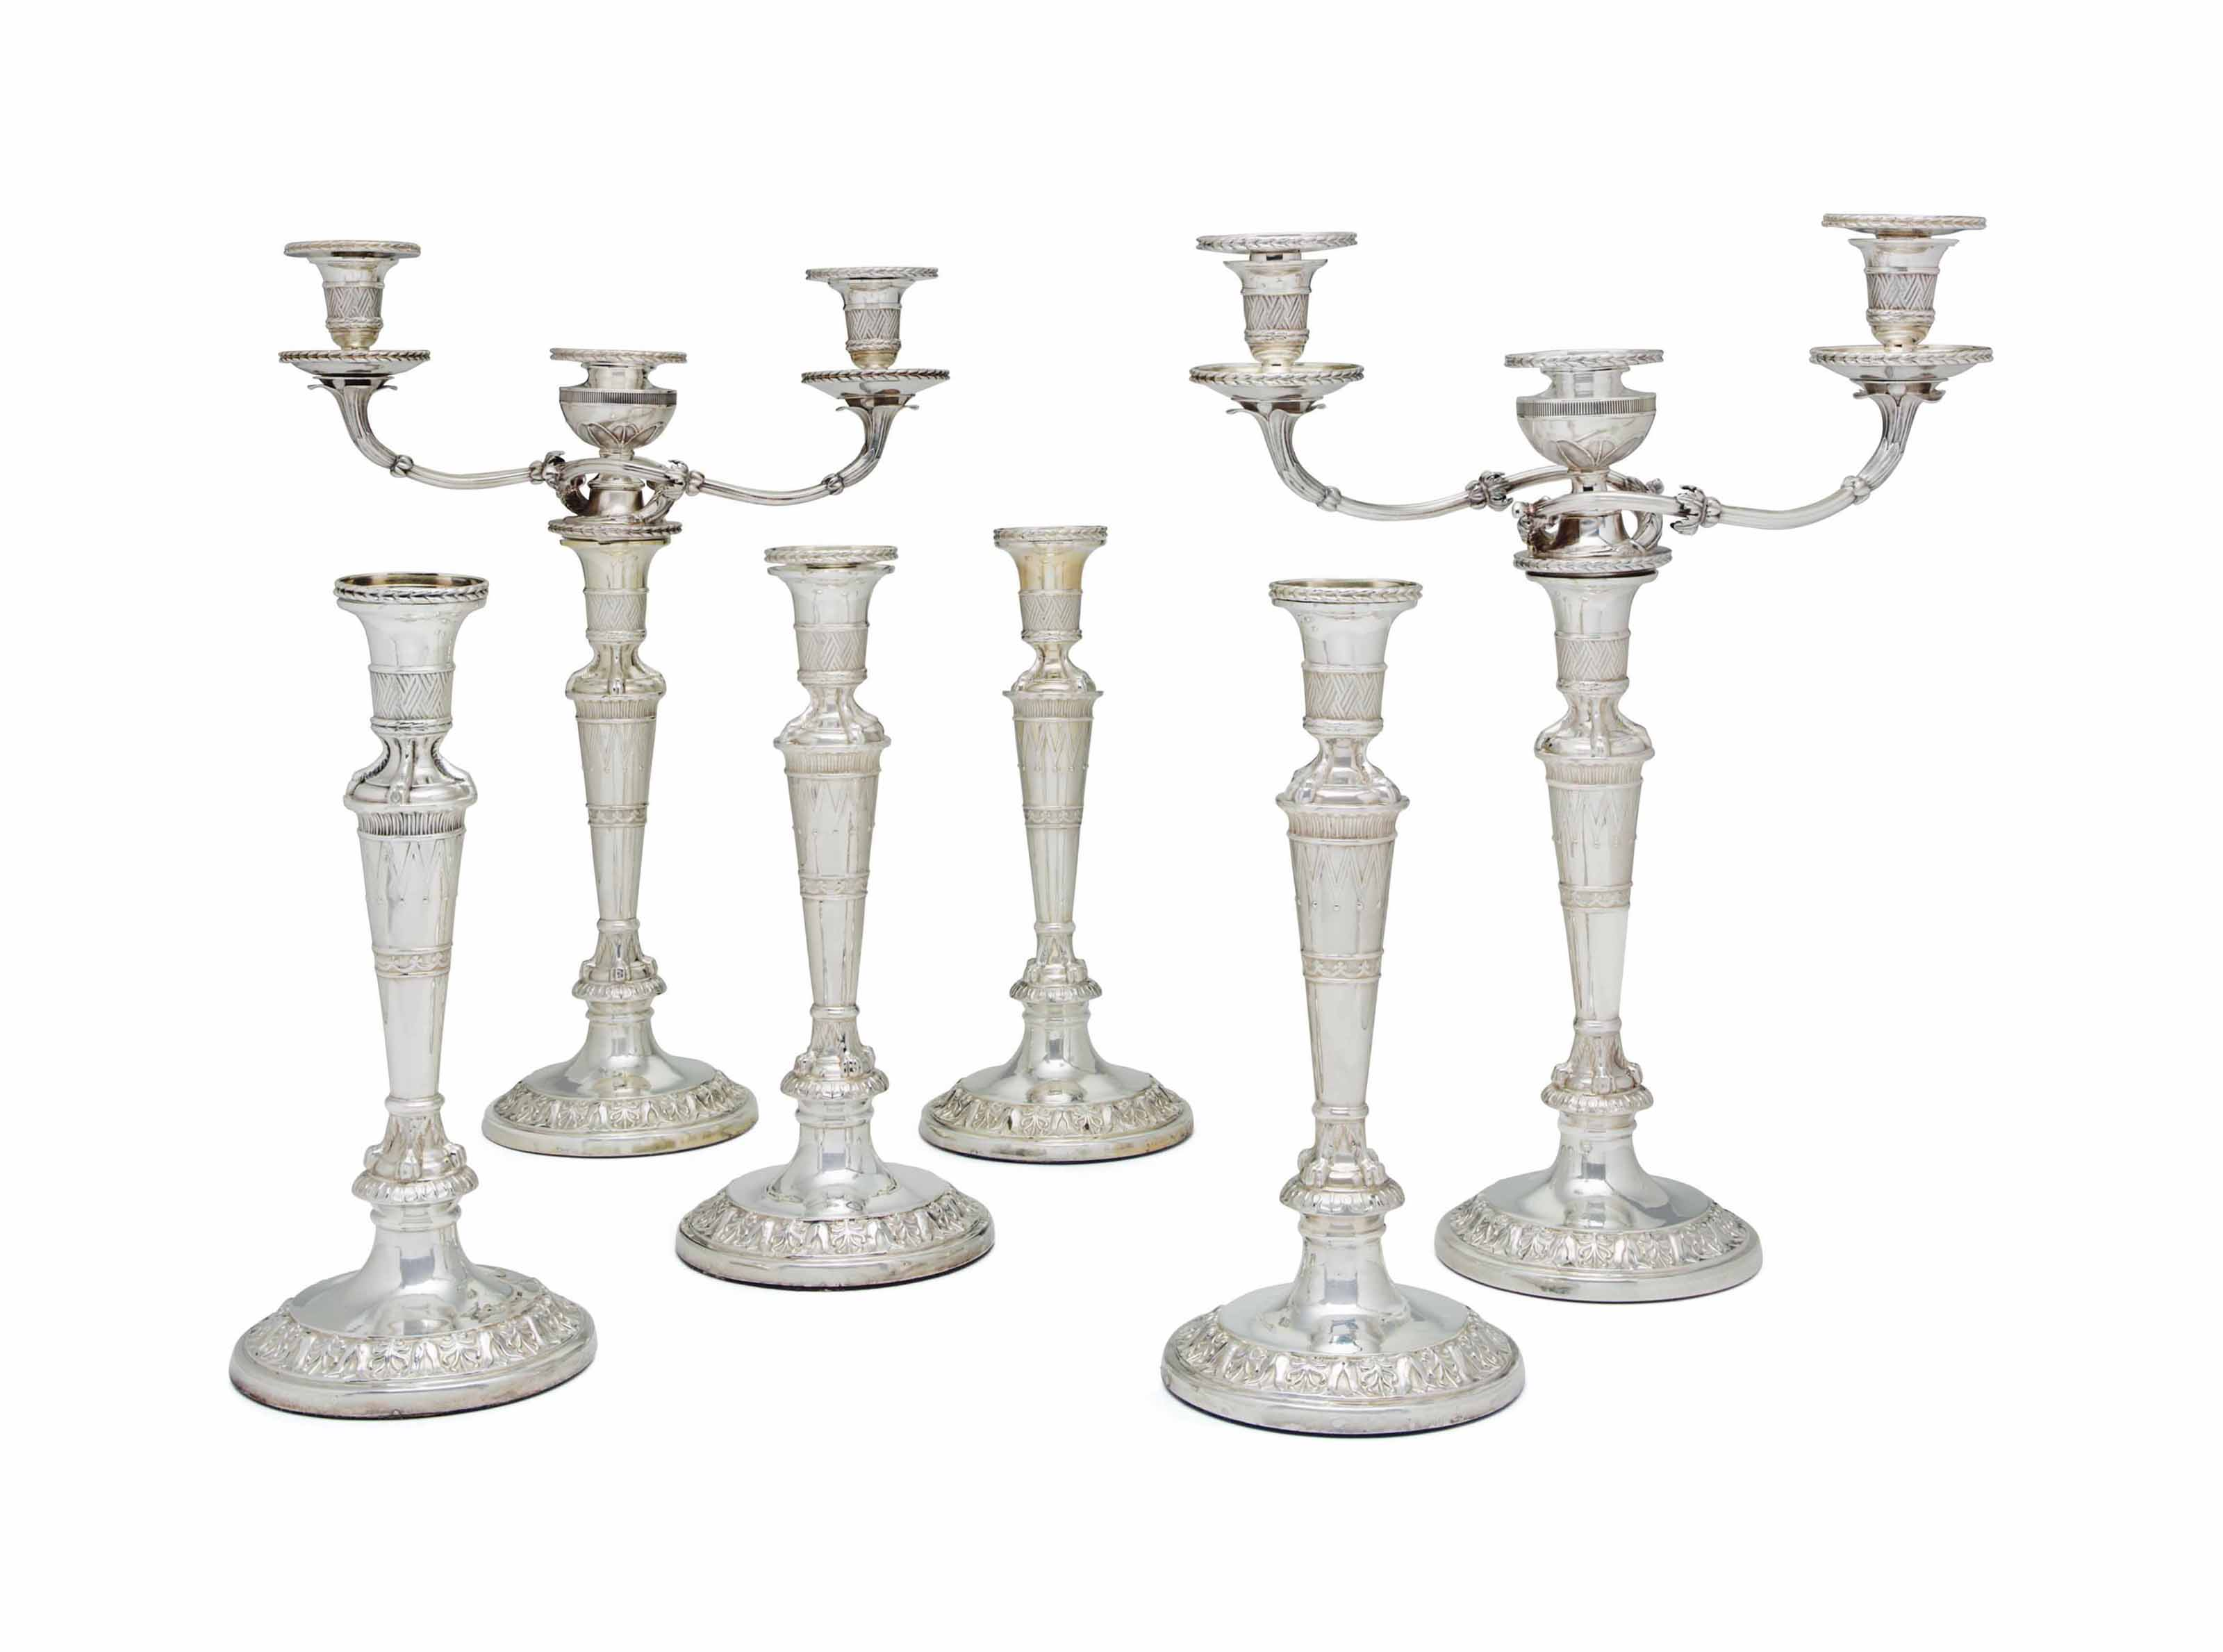 A PAIR OF GEORGE III SILVER THREE-LIGHT CANDELABRA AND A SET OF FOUR GEORGE III SILVER CANDLESTICKS EN SUITE